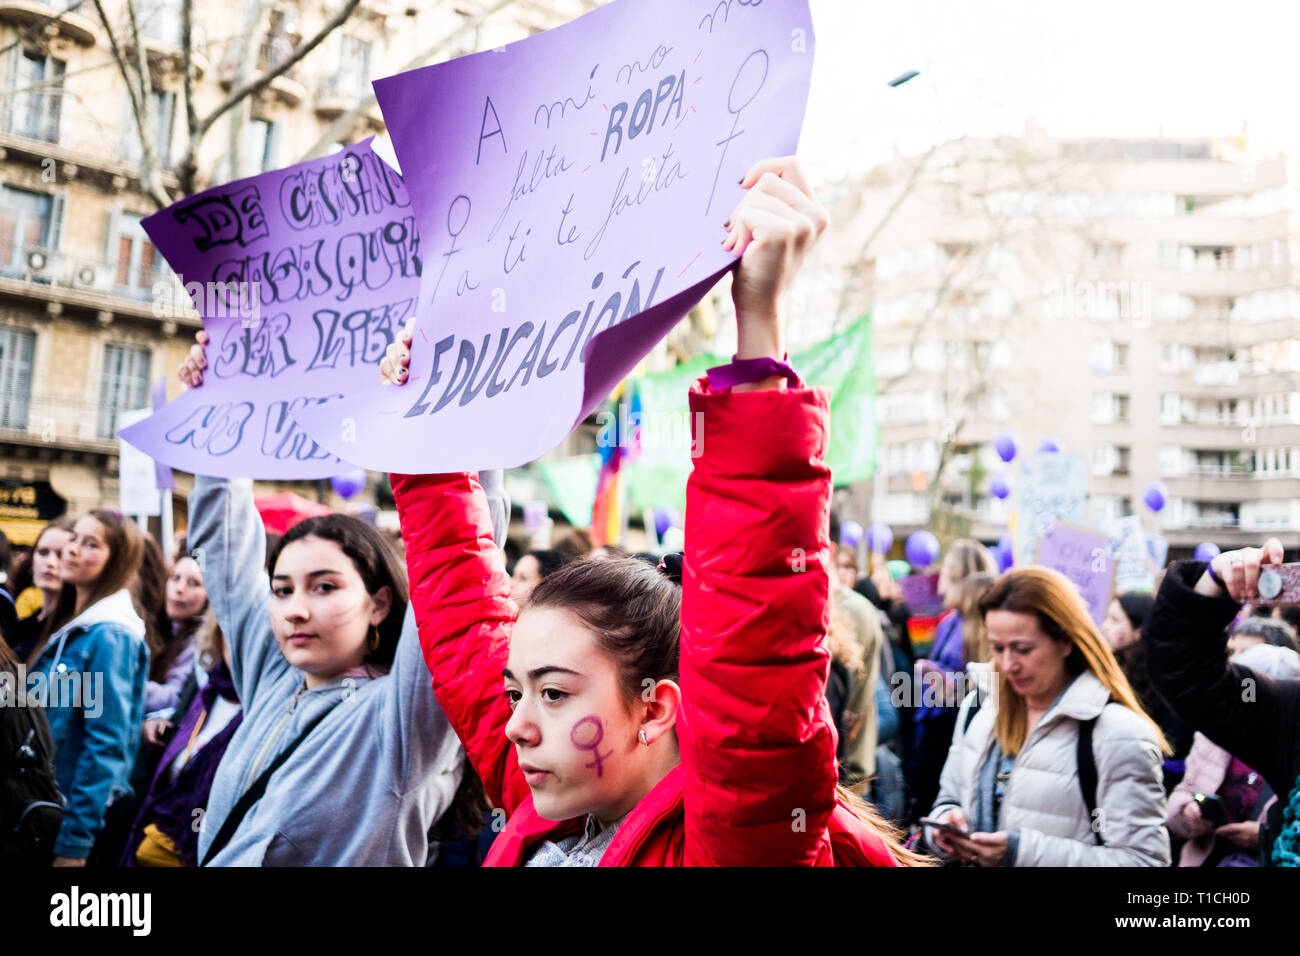 Barcelona, Spain - 8 march 2019:  young girls rally in the city center during woman's day for better human rights for women and feminism - Stock Image